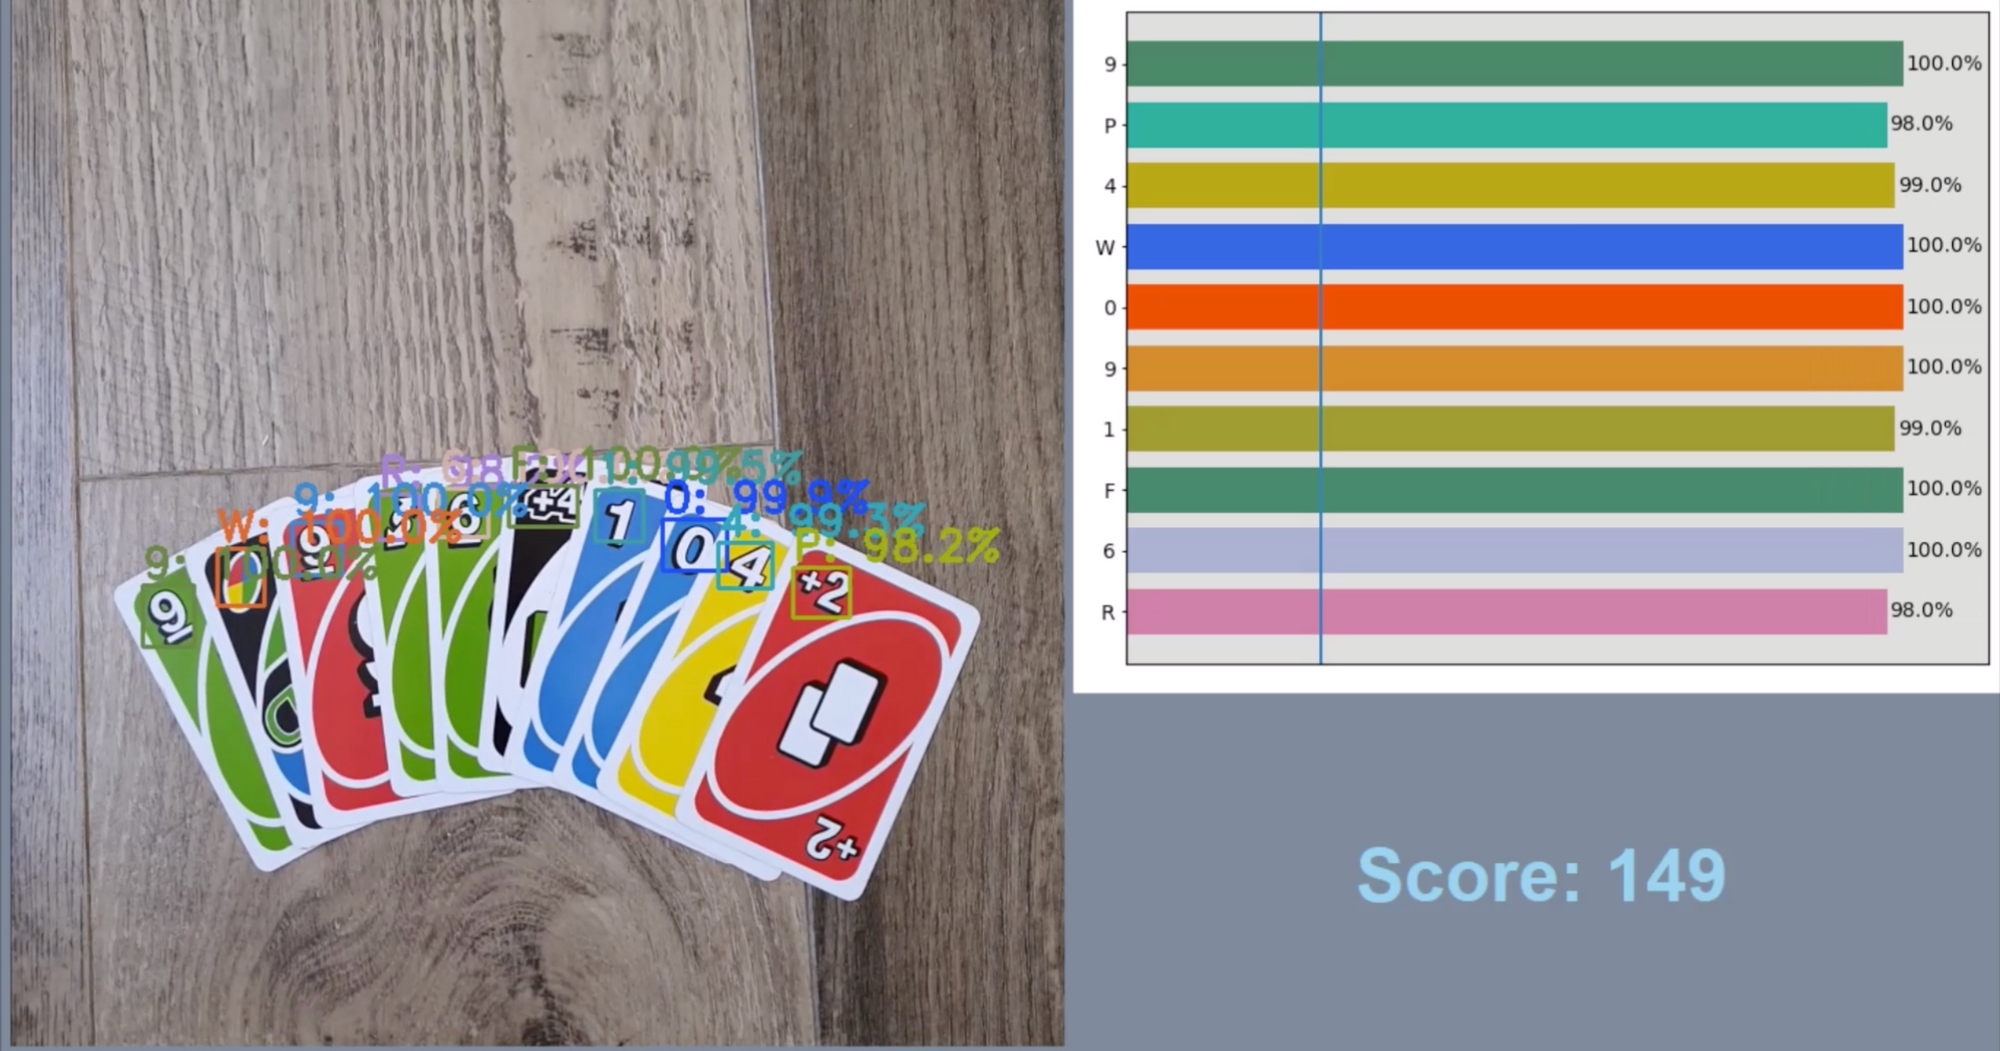 Uno Scoring results with computer vision.